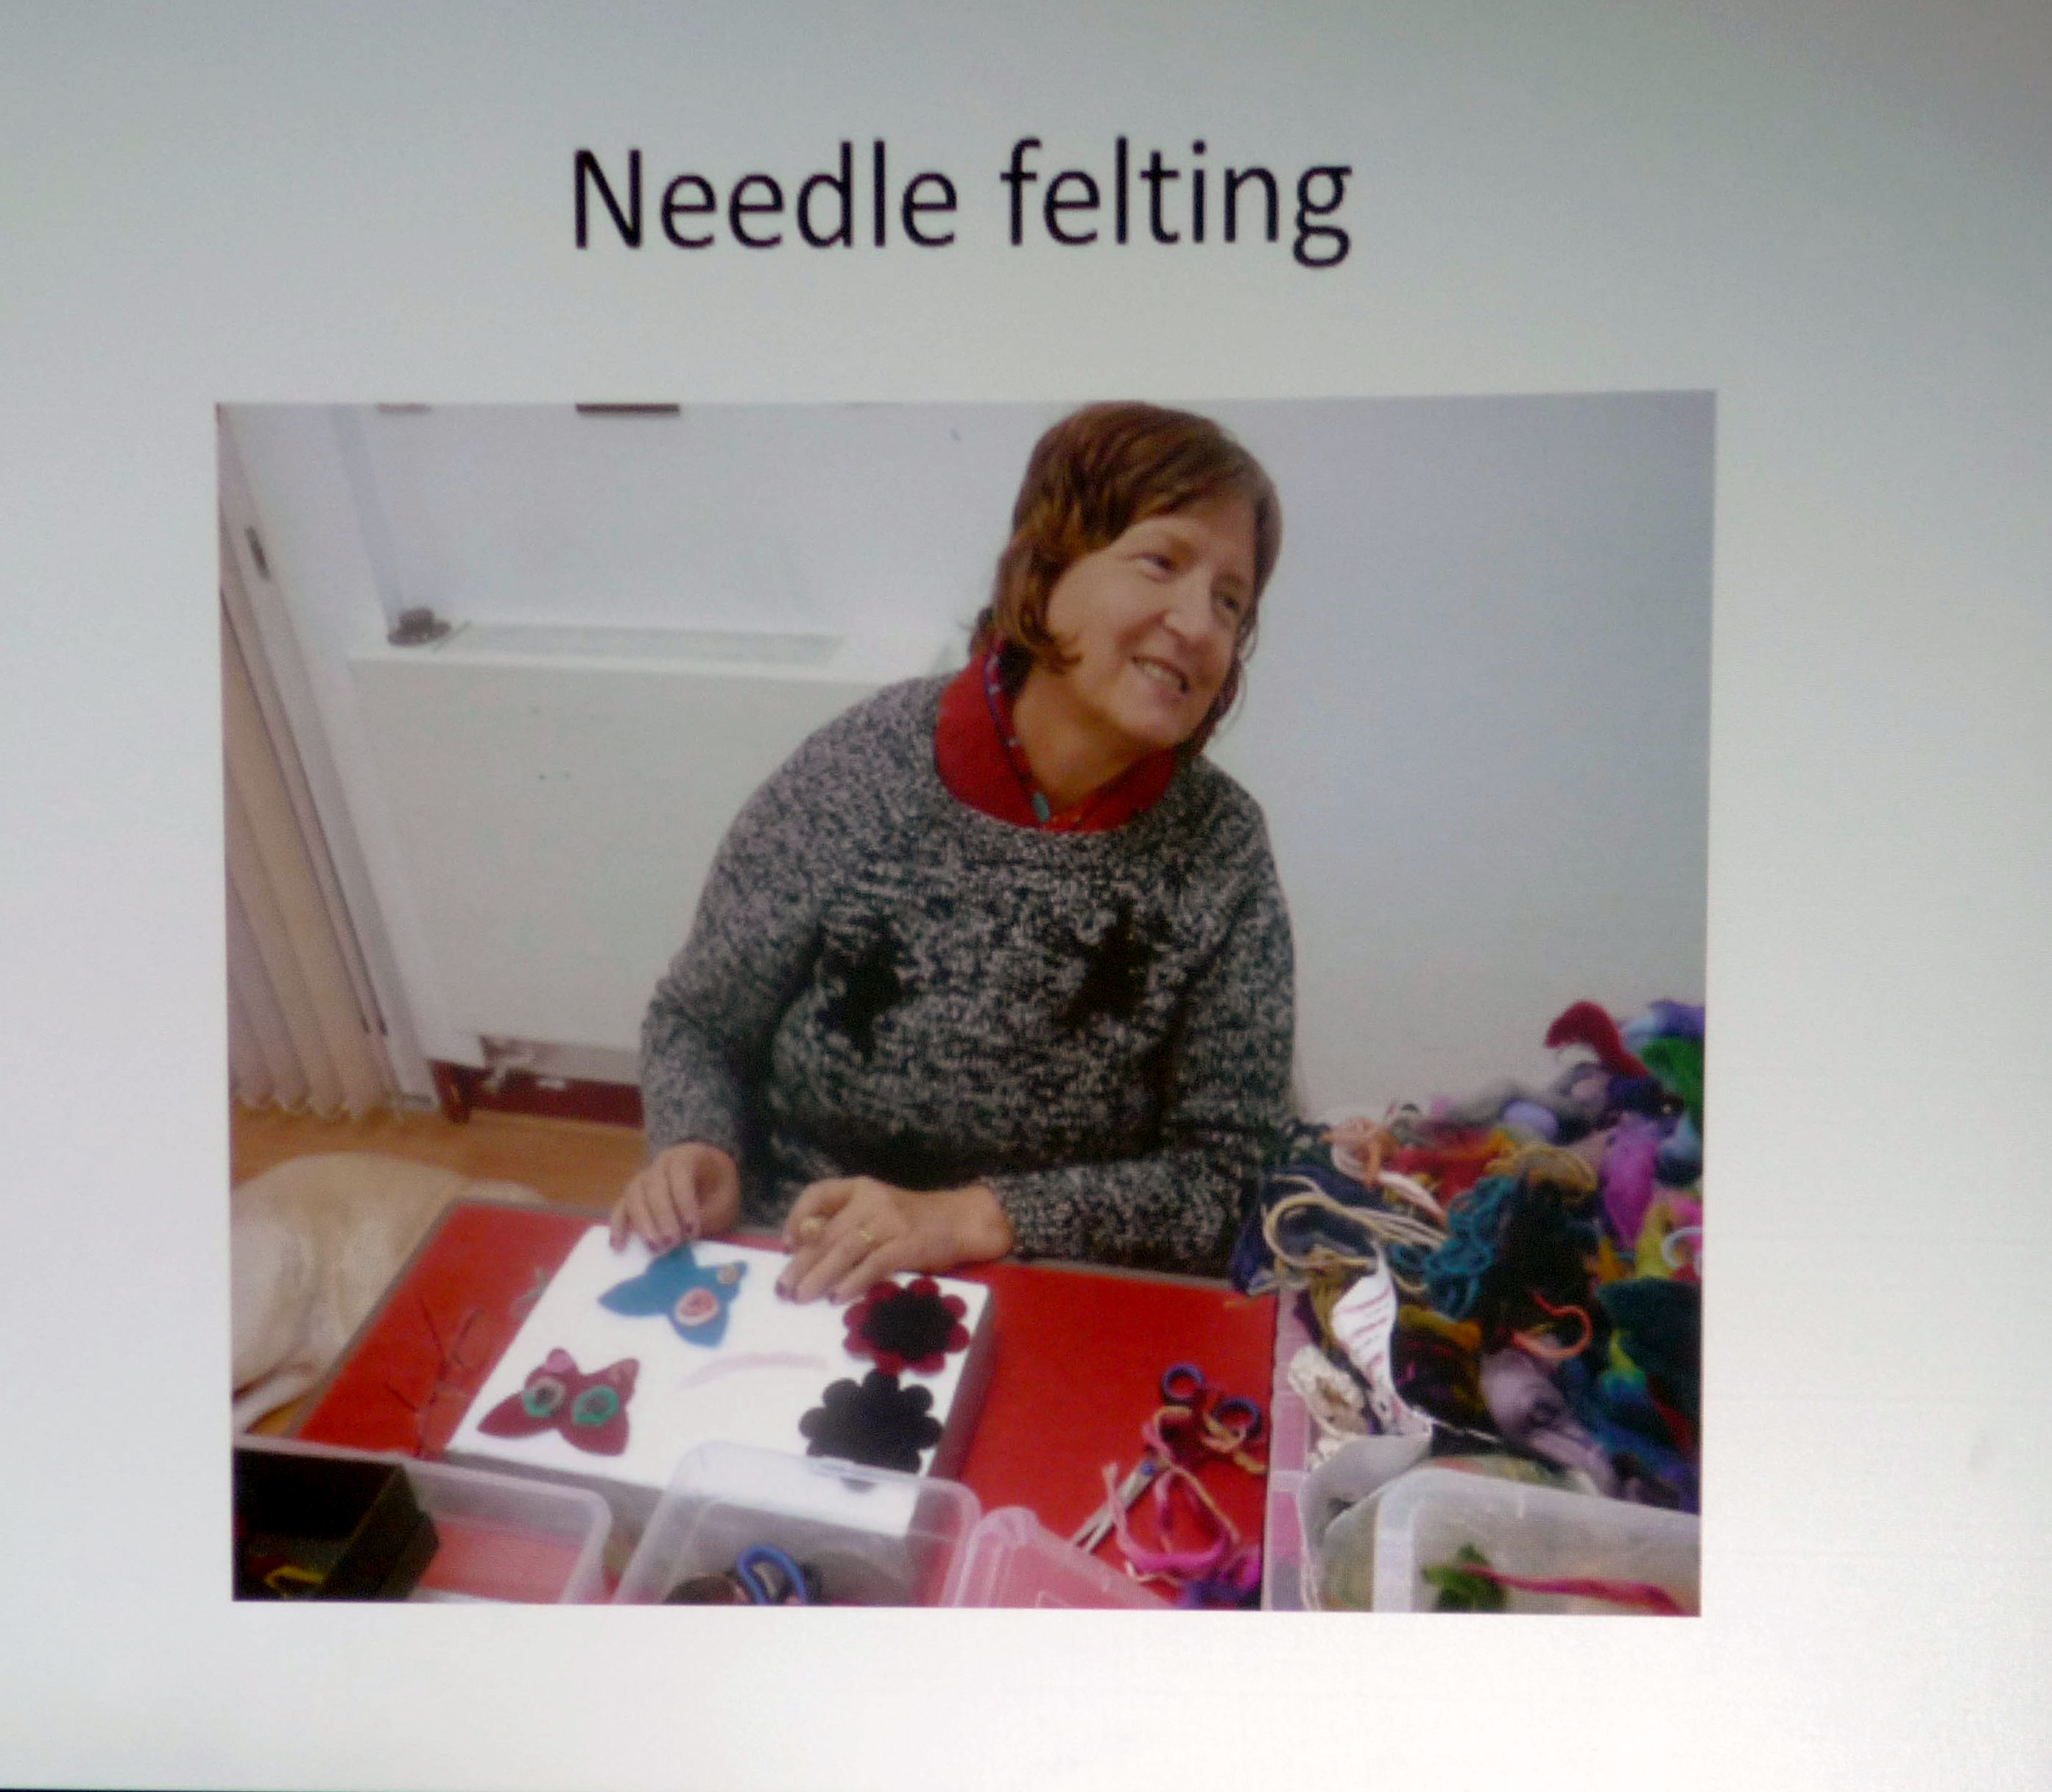 slide showing a member of Wirral Society of the Blind and Partially Sighted needlefelting